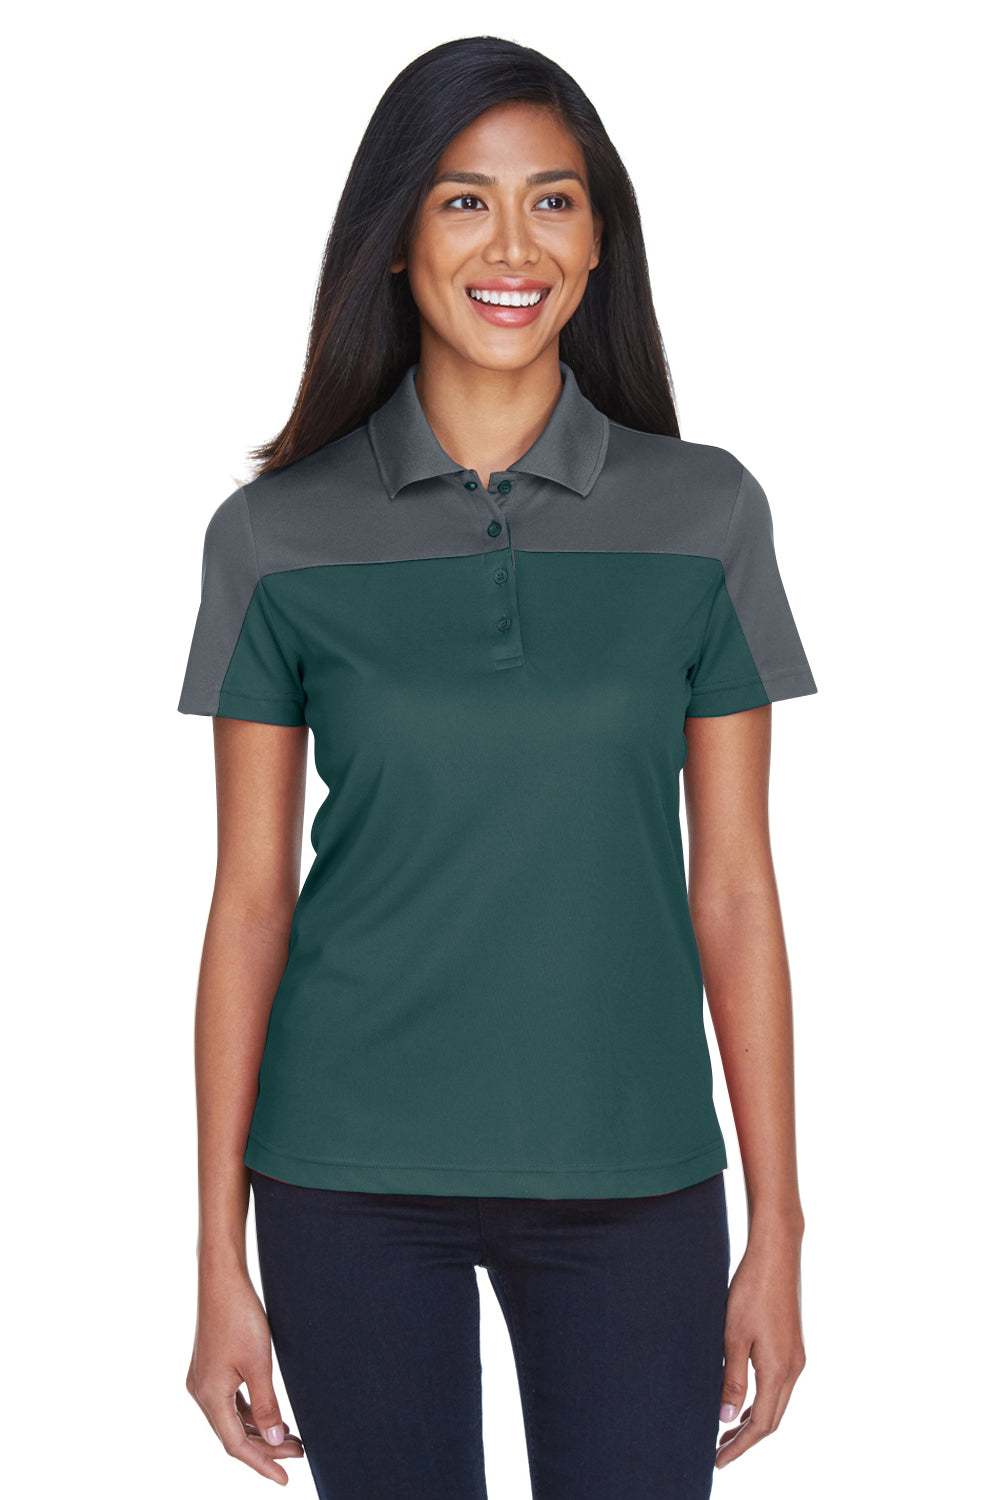 Core 365 CE101W Womens Balance Performance Moisture Wicking Short Sleeve Polo Shirt Forest Green/Grey Front